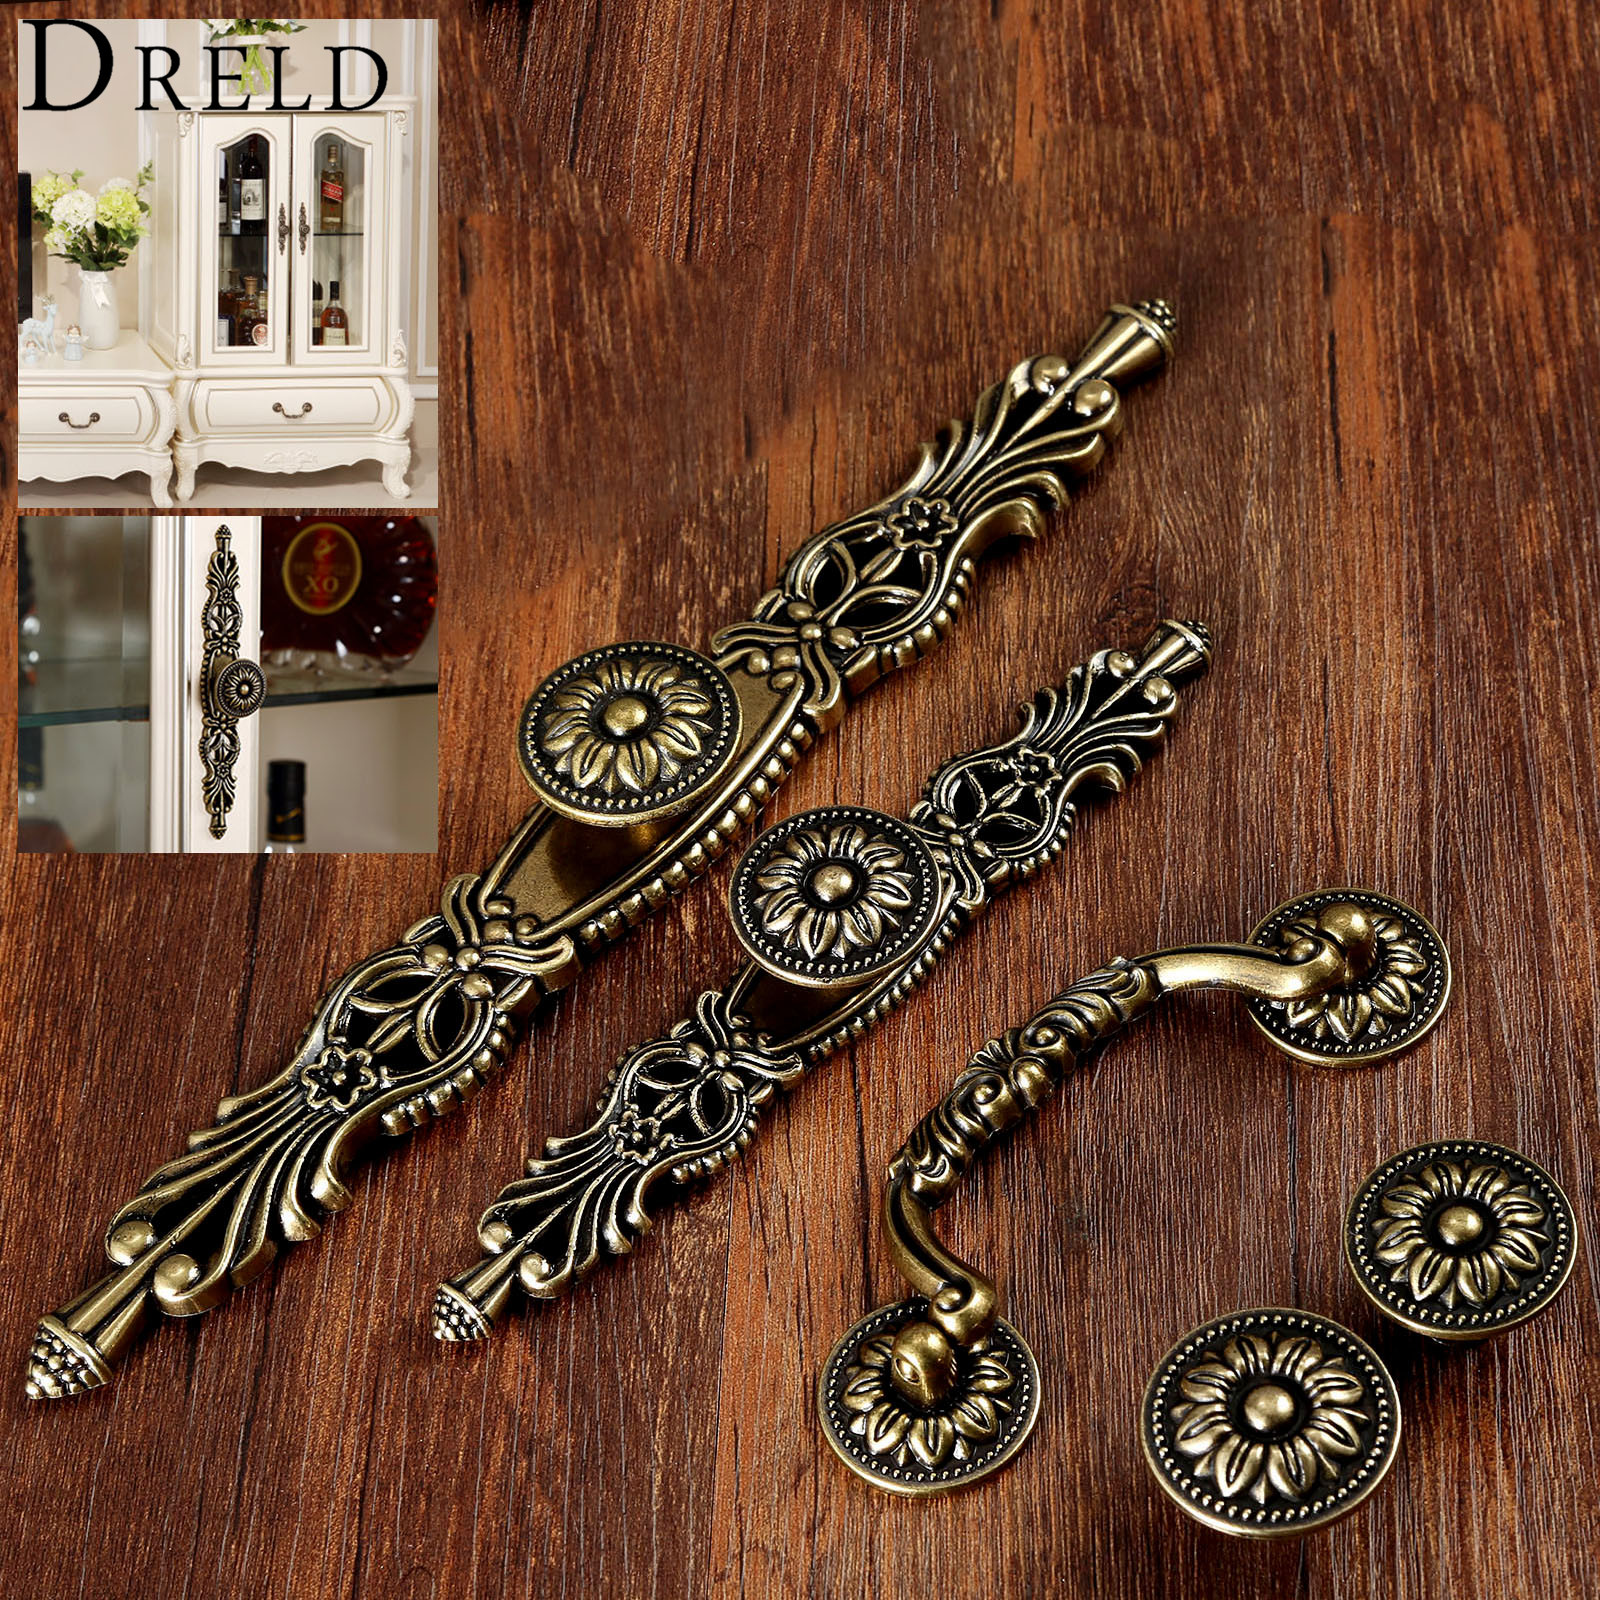 DRELD Antique Furniture Handle Vintage Cabinet Knobs and Handles Wardrobe Cupboard Drawer Kitchen Pull Knob Furniture Hareware luxury gold czech crystal round cabinet door knobs and handles furnitures cupboard wardrobe drawer pull handle